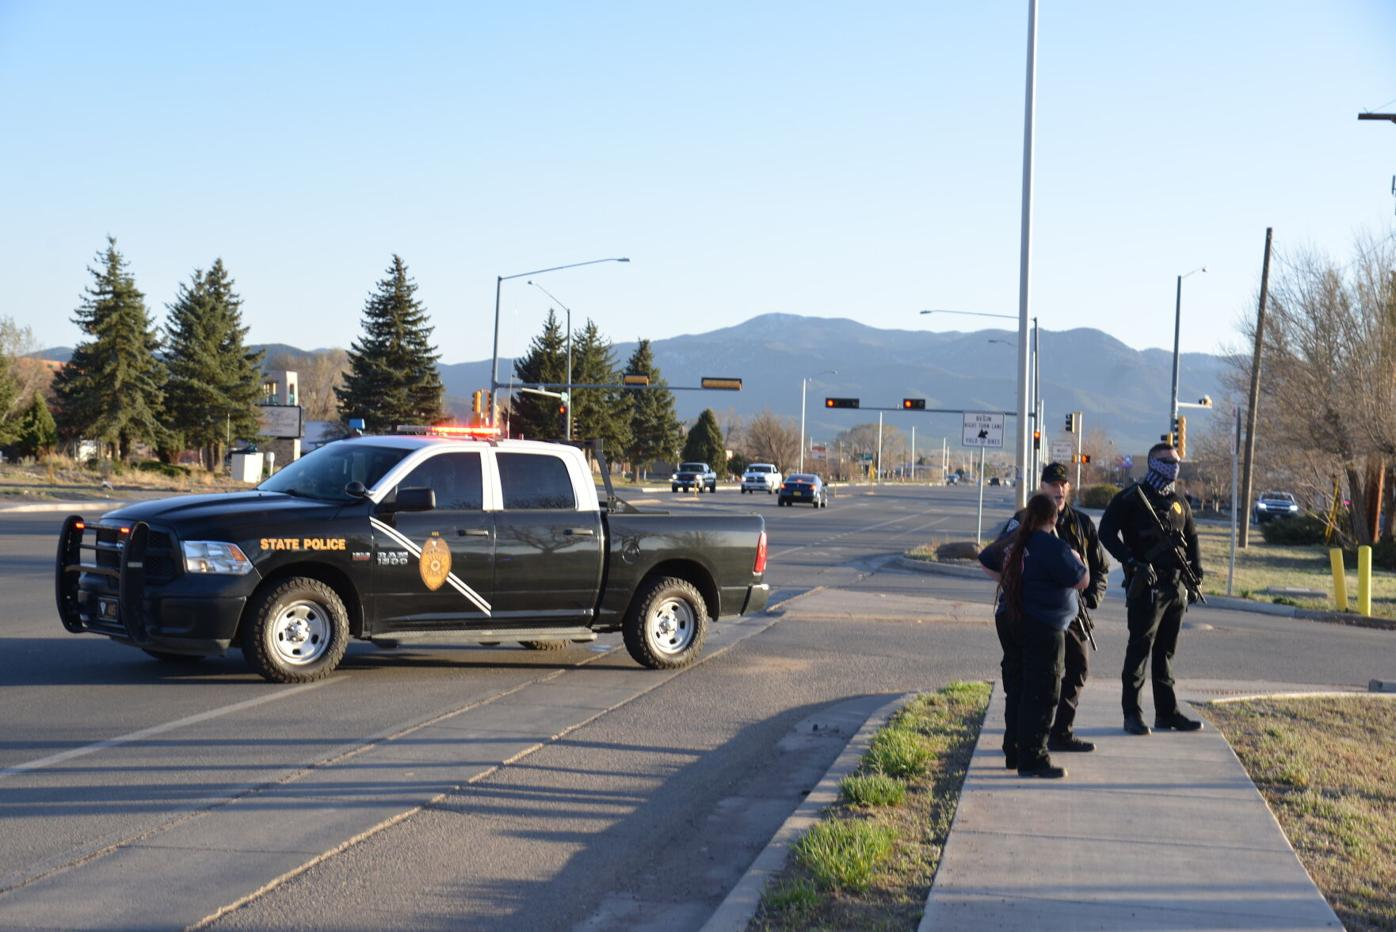 Confusion and arrest after Walmart bomb threat